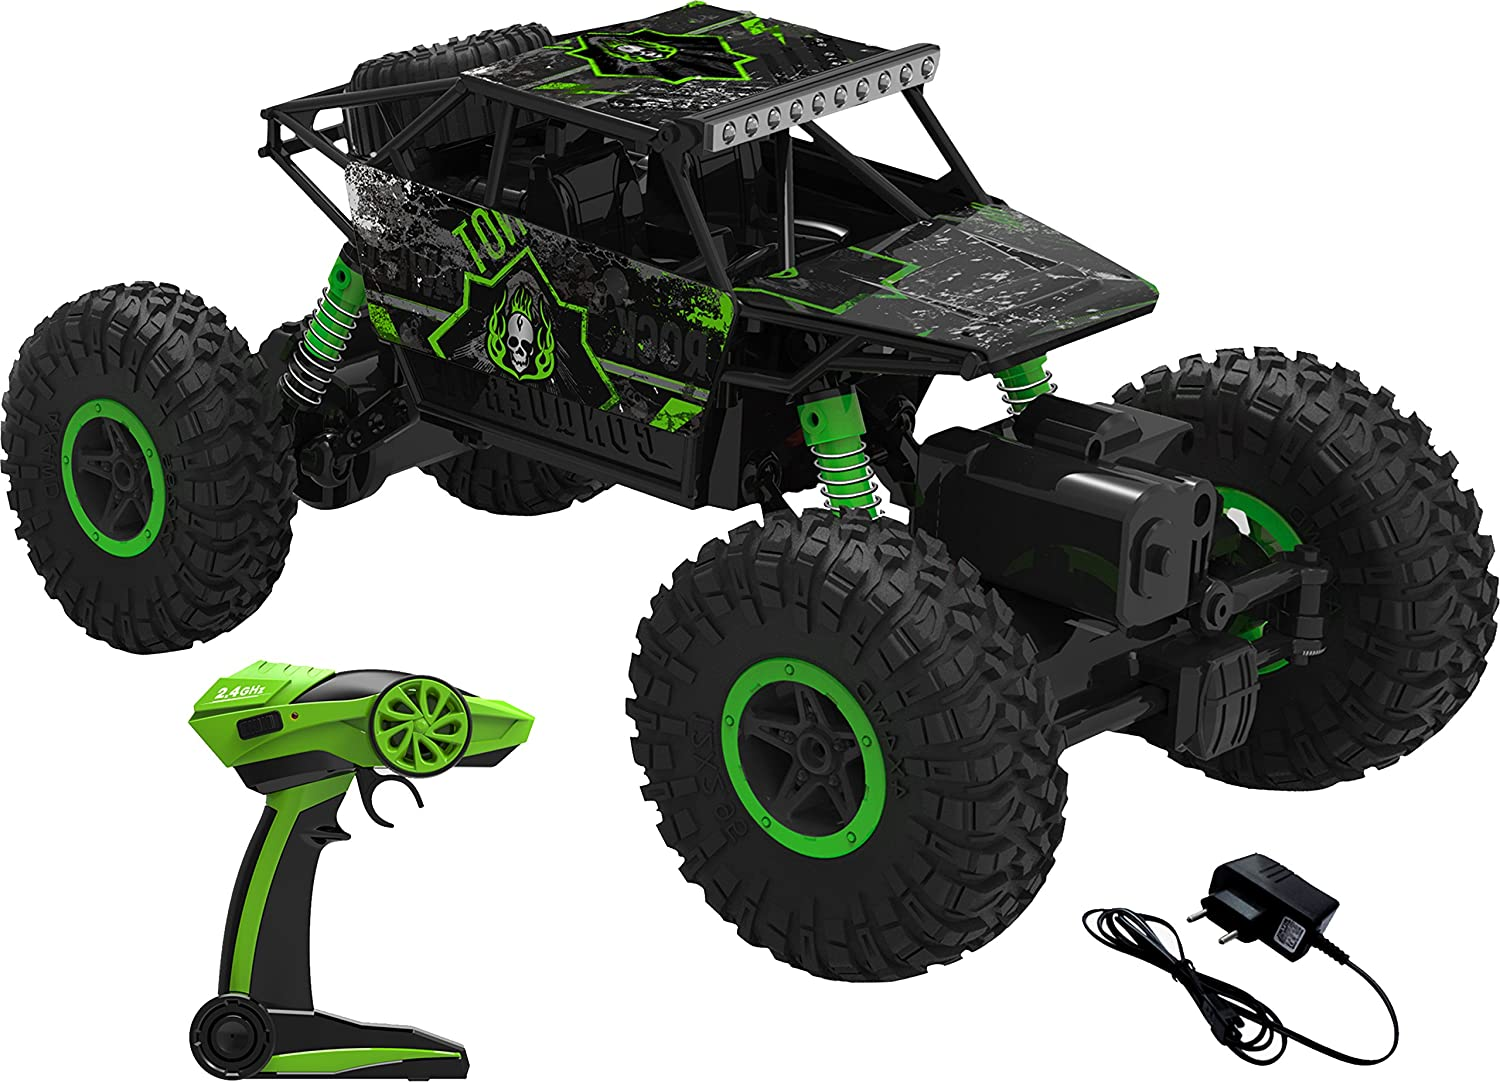 Buy Webby Remote Controlled Rock Crawler Monster Truck, Green ... on rc monster cars, rc remote control monster truck, rc monster truck wheels, rc monster vans, rc monster truck parts, rc trucks 4 sale, rc monster semi truck, rc monster truck tires, rc scale monster truck,